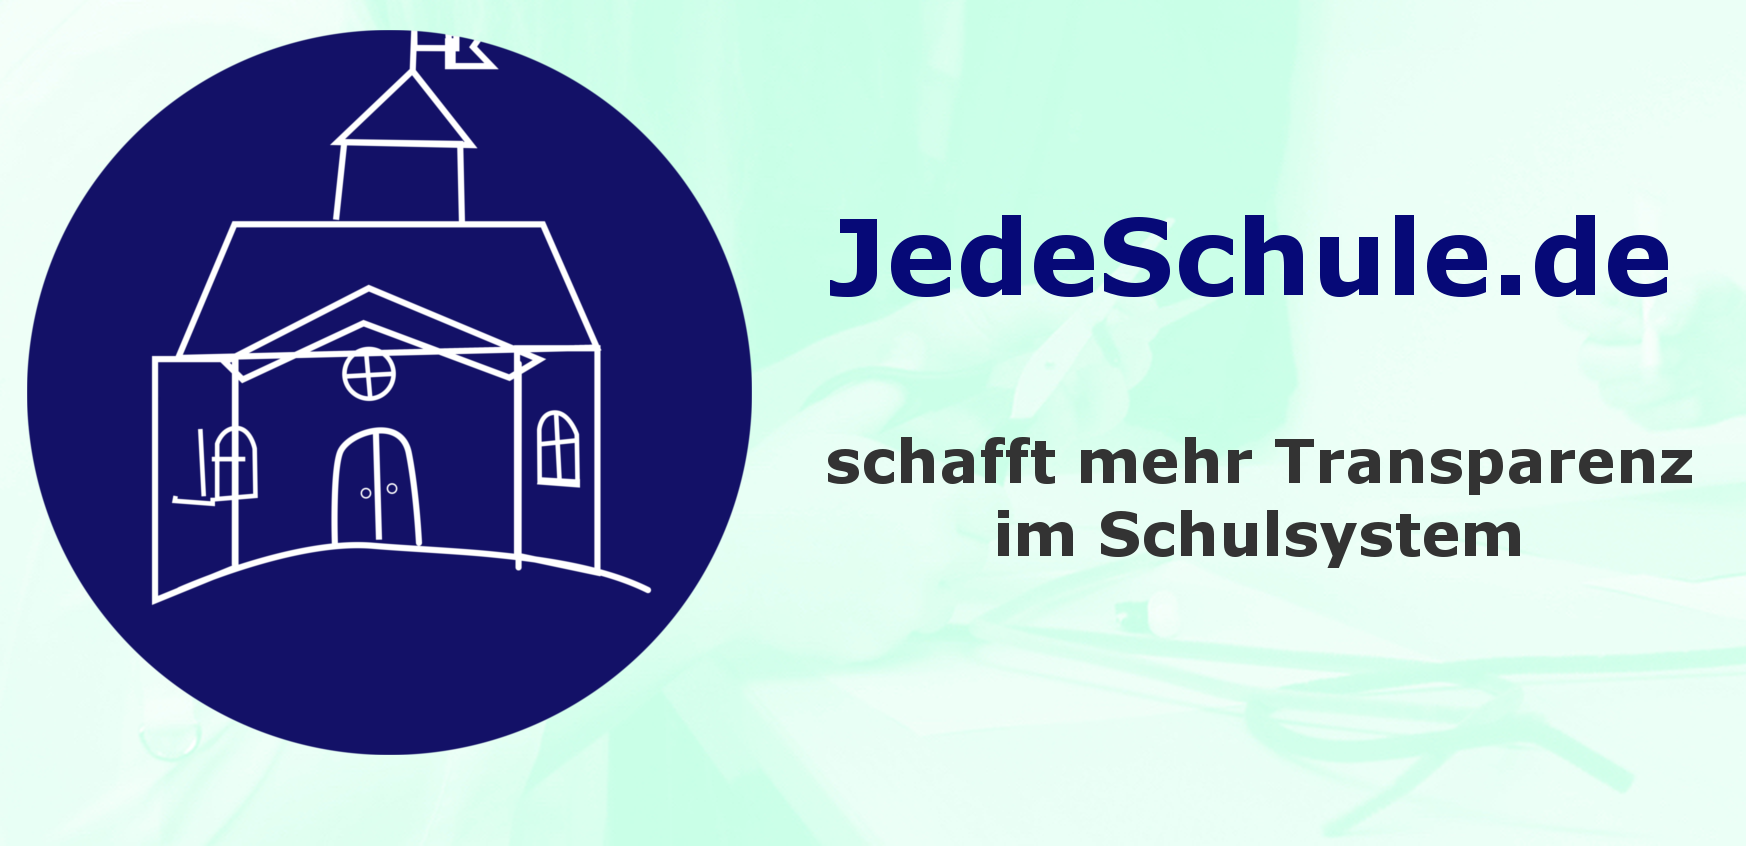 Launch: Jedeschule.de promotes transparency within the educational system in Germany